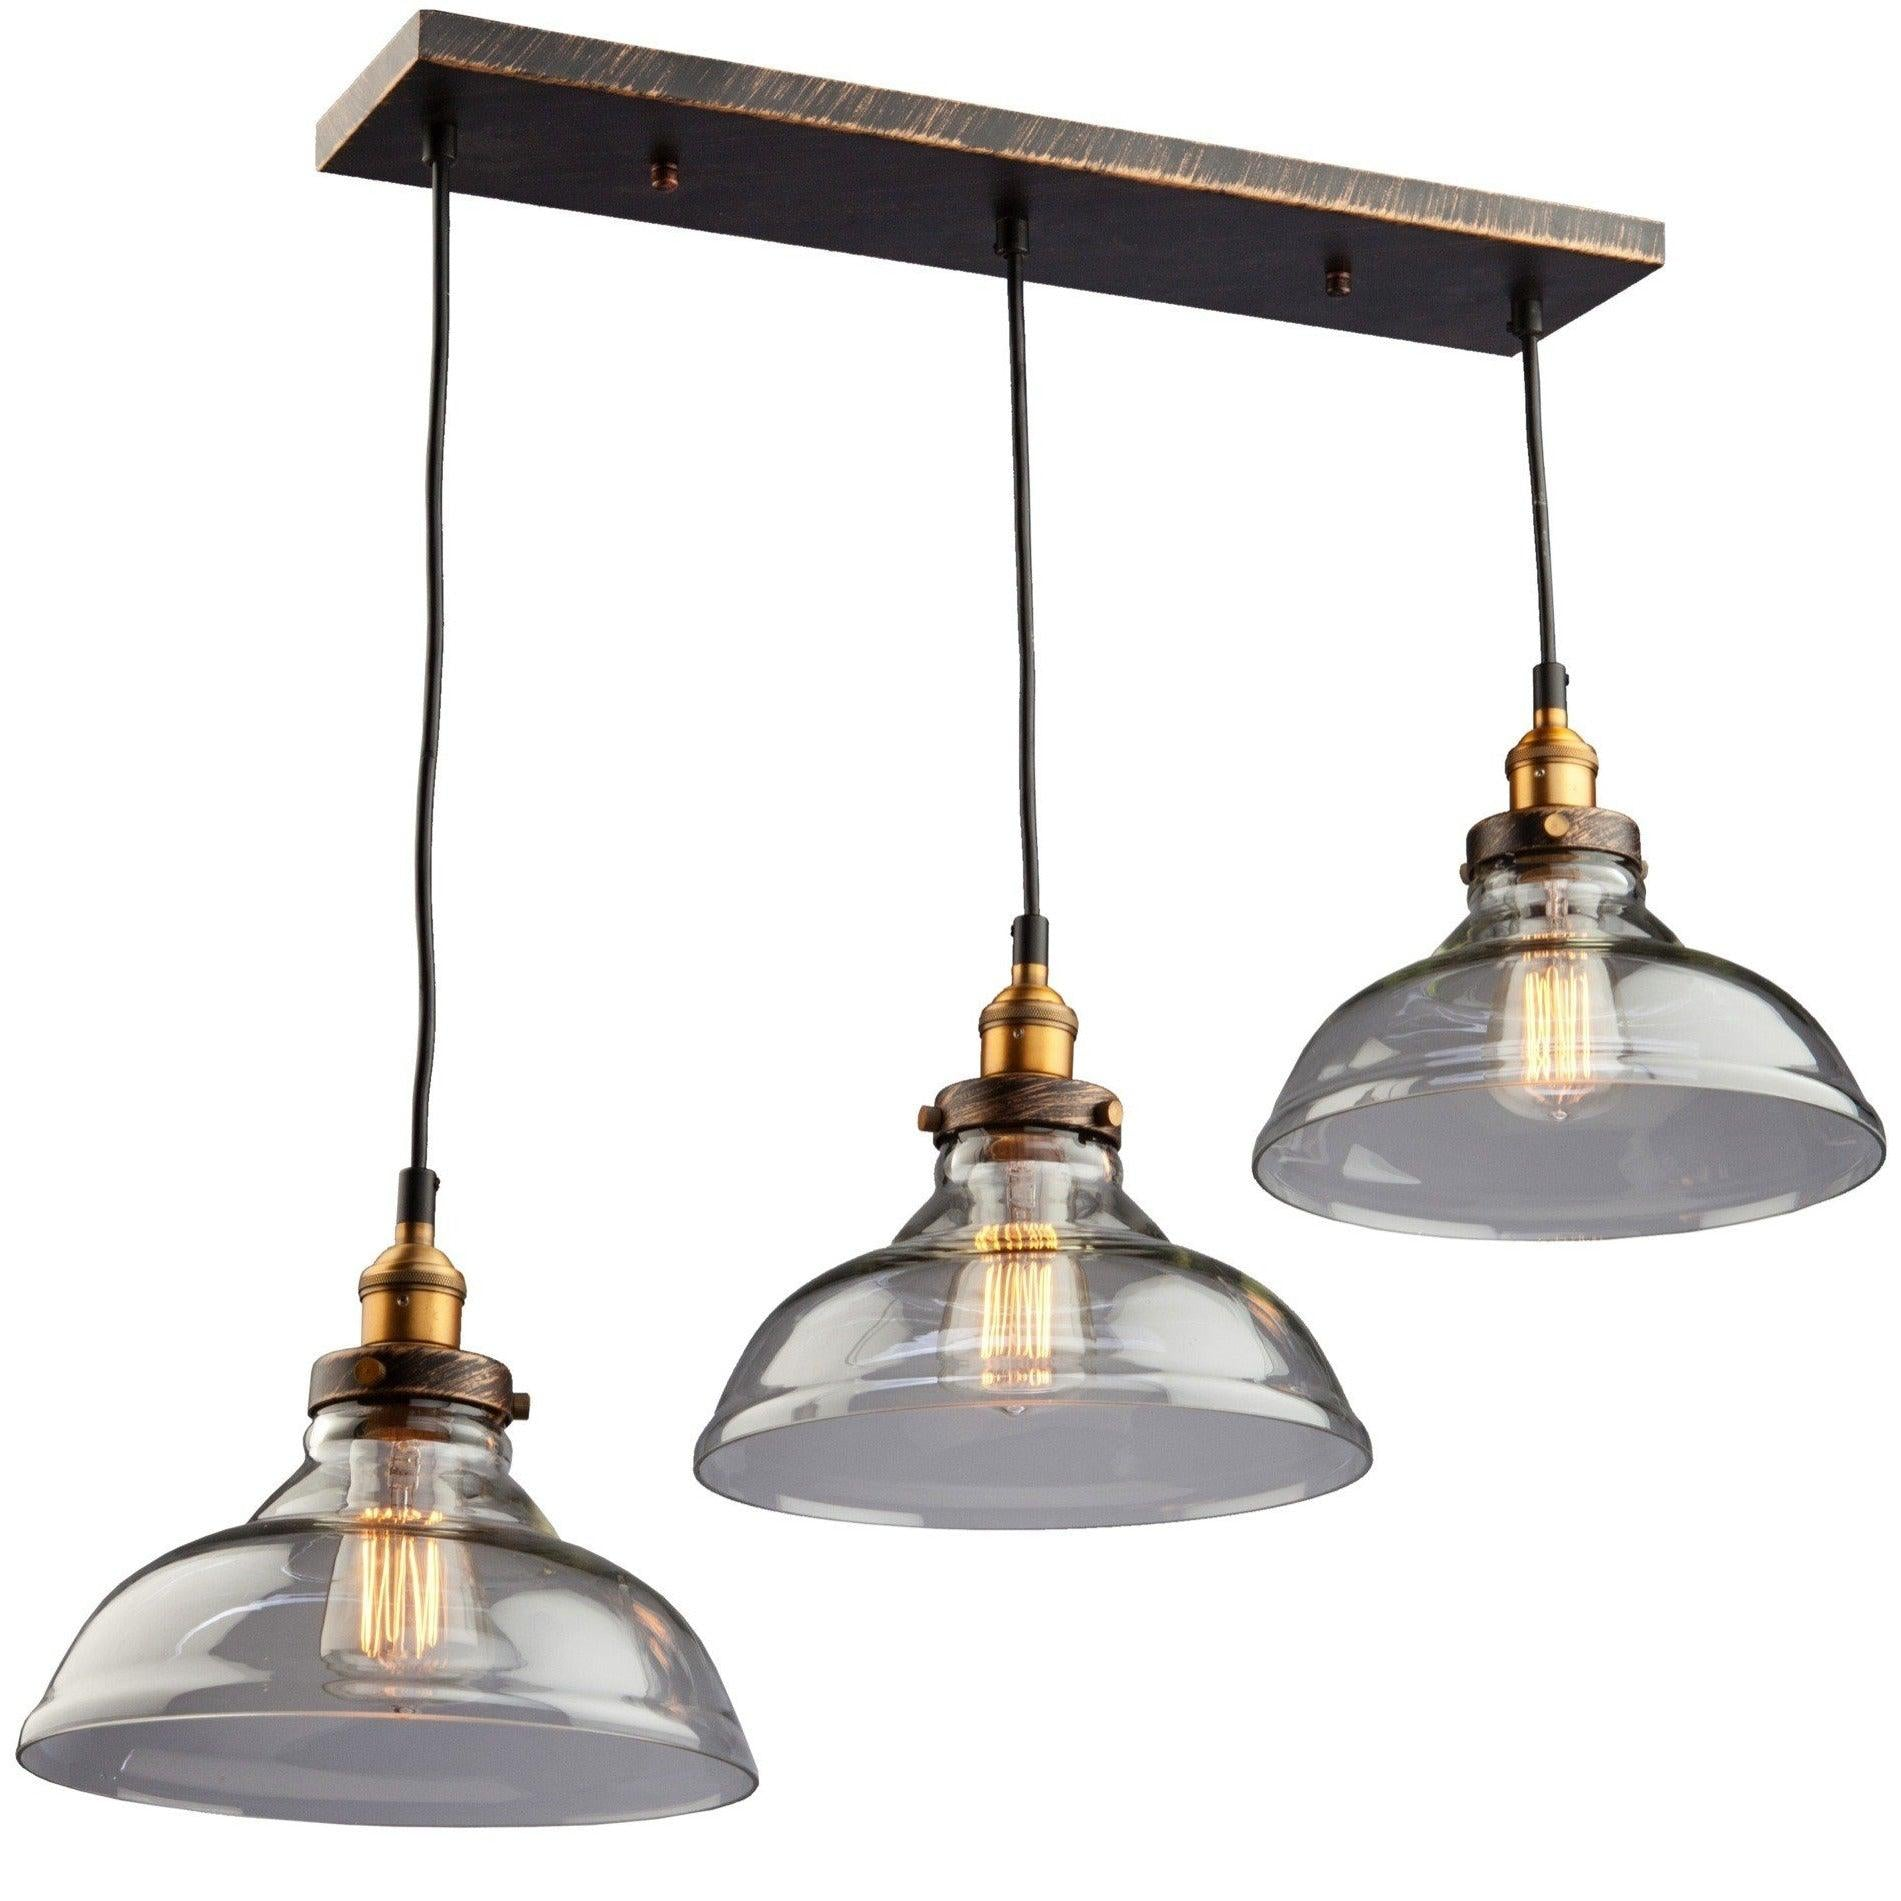 Artcraft Lighting - AC10170 - Three Light Pendant - Greenwich - Bronze & Copper